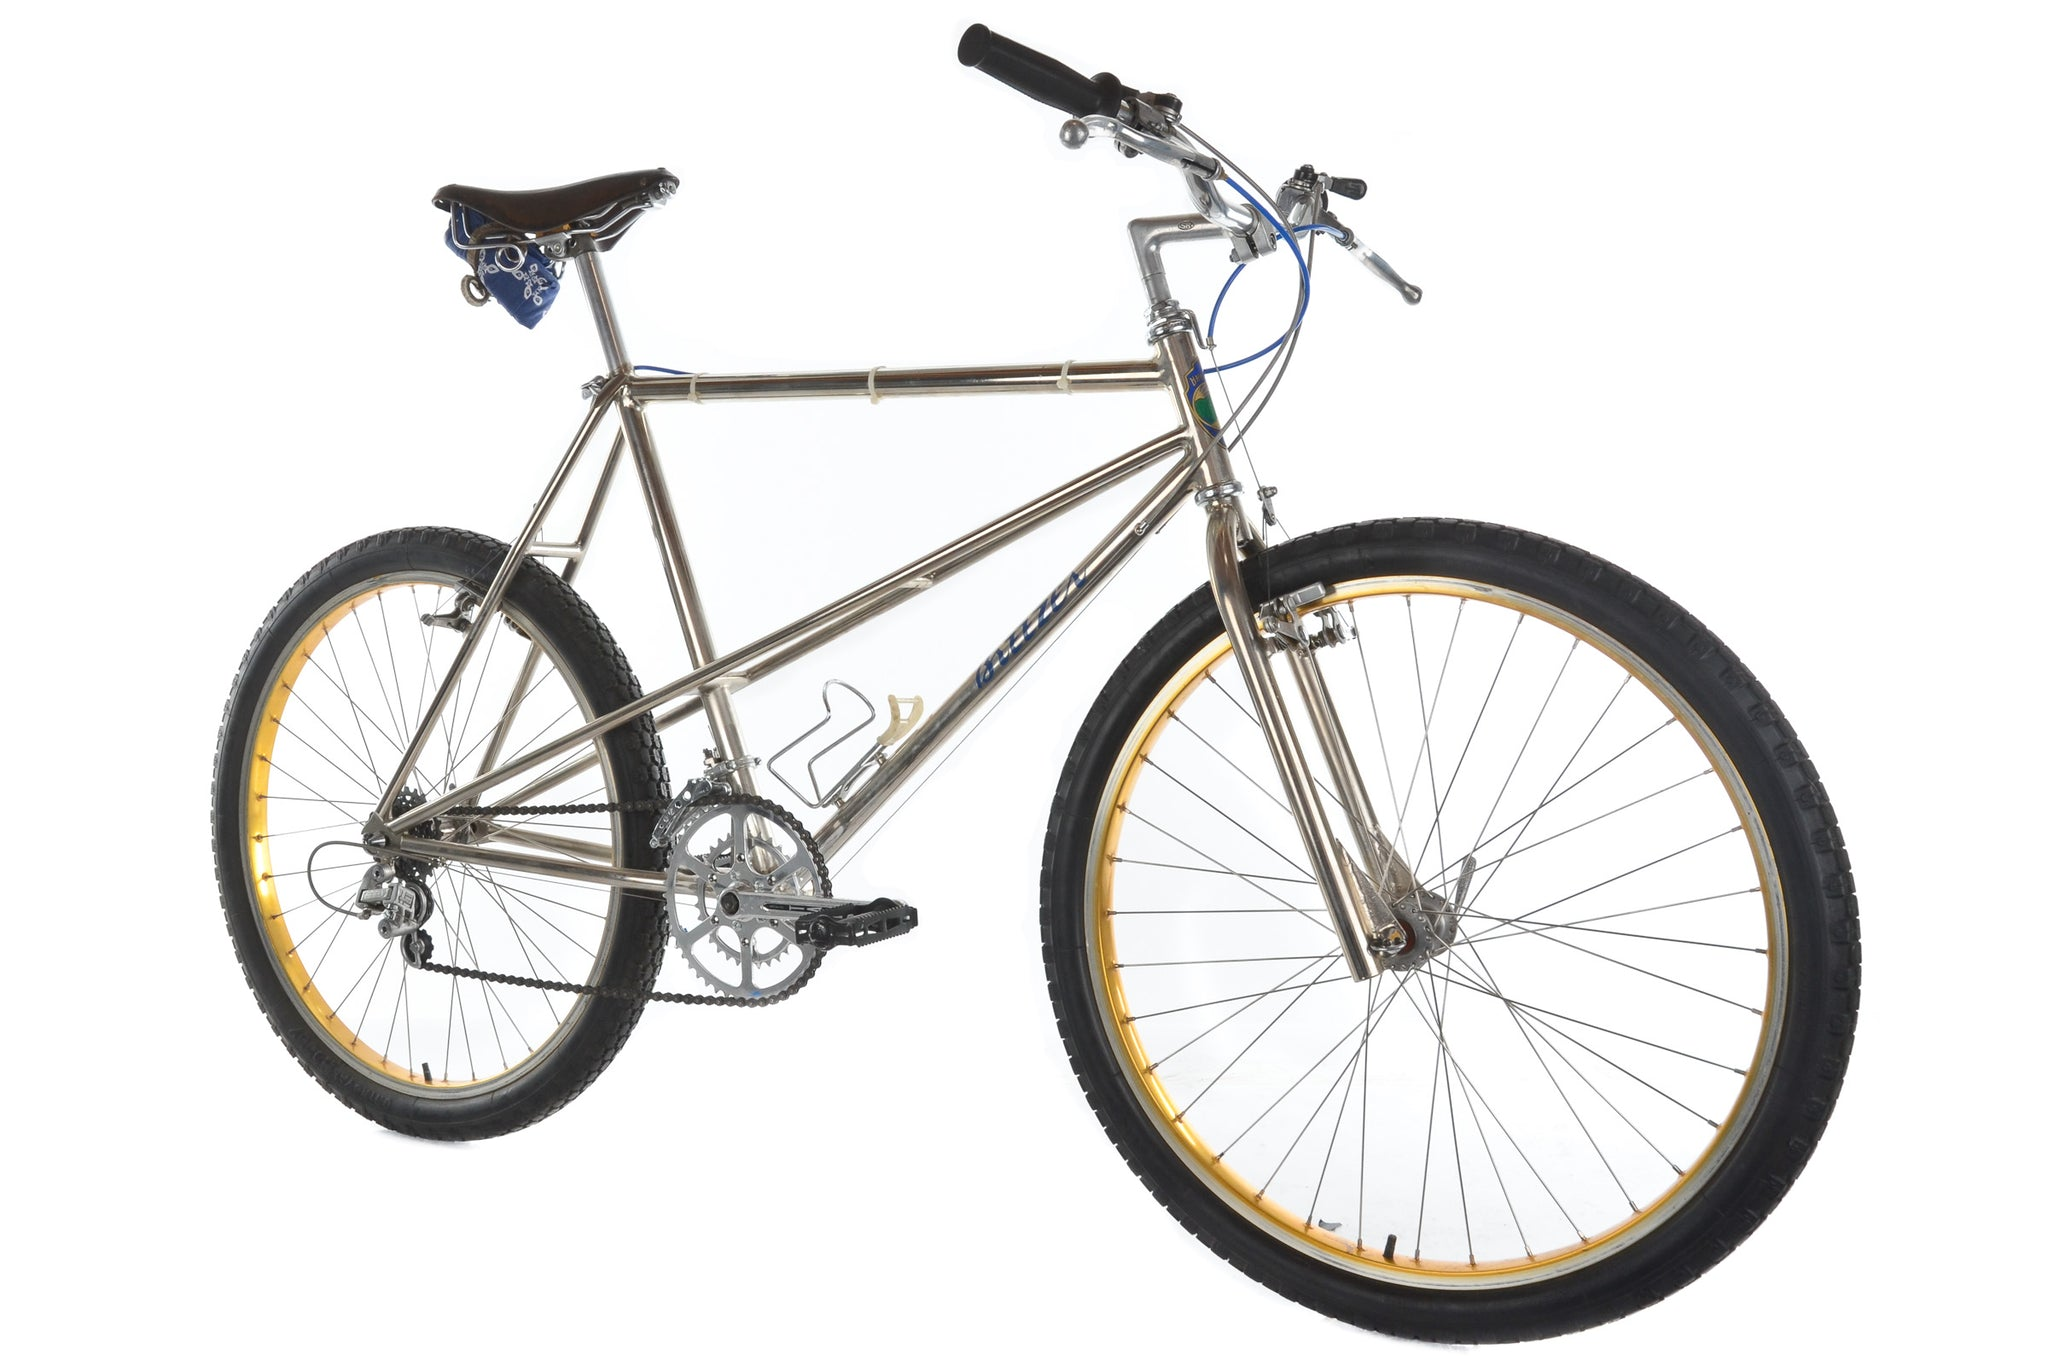 Breezer Series I mountain bike